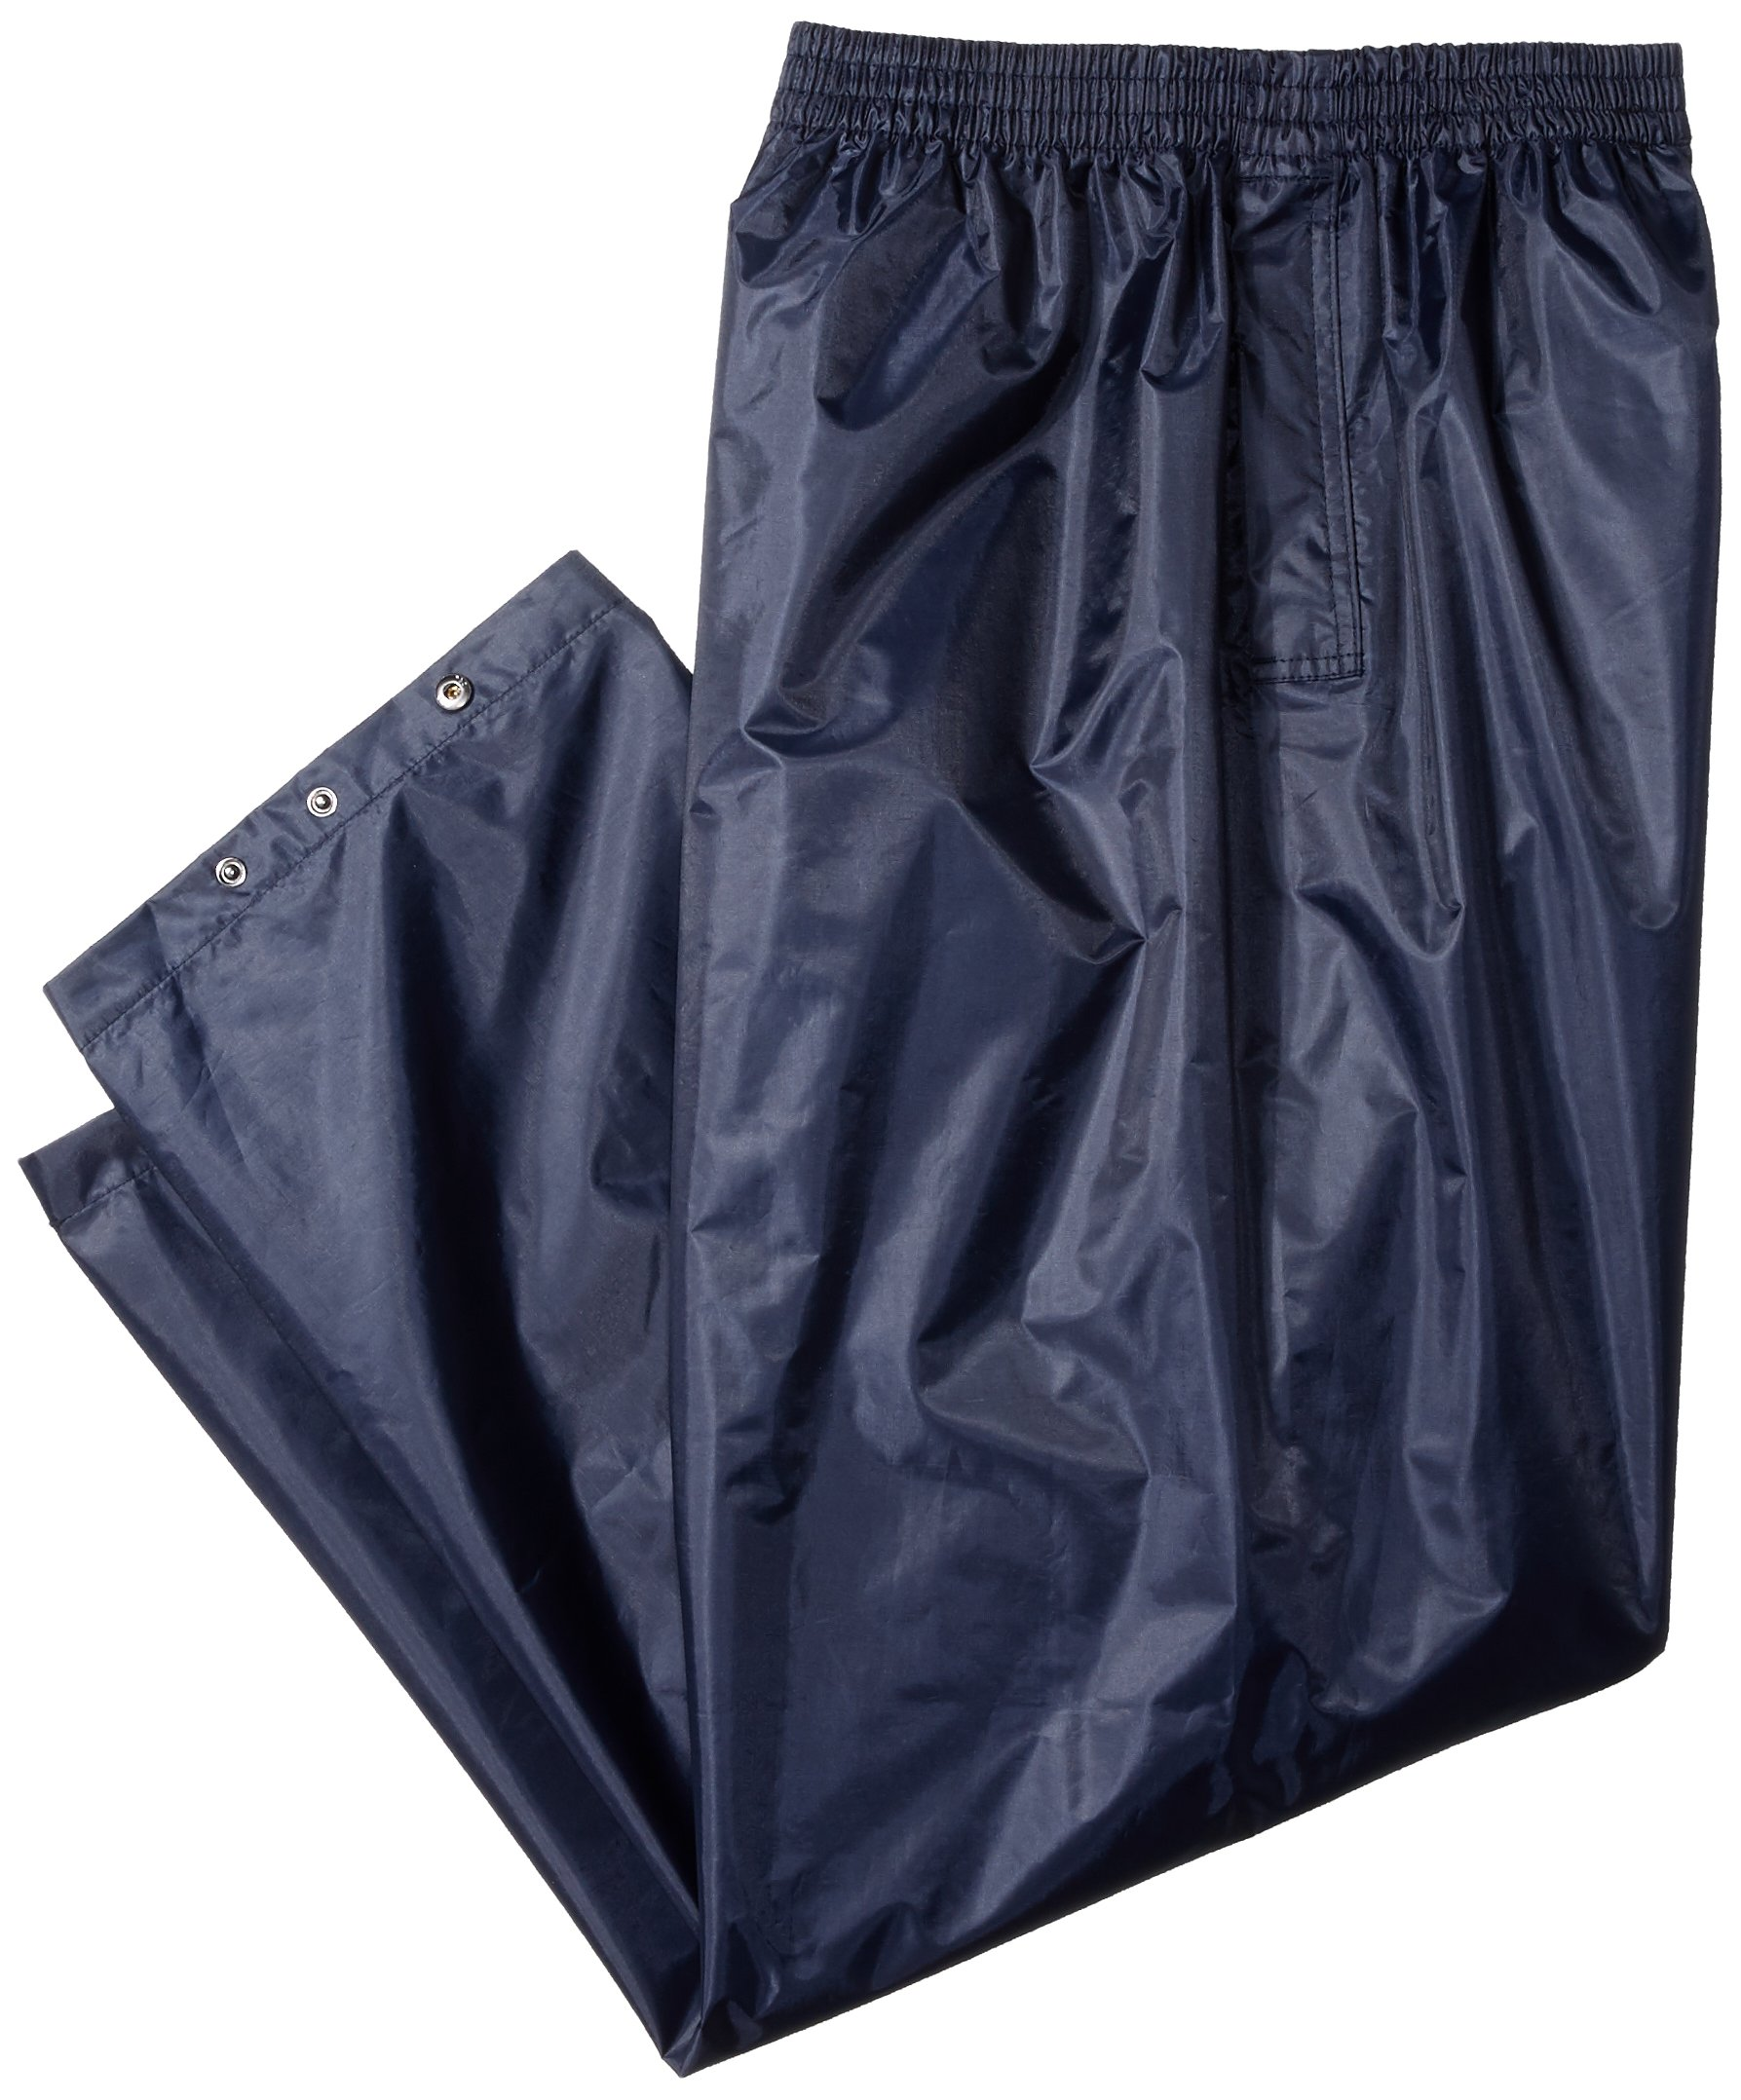 Portwest S441 Rainwear Men's Waterproof Rain Pants, 4X-Large, Navy by Portwest